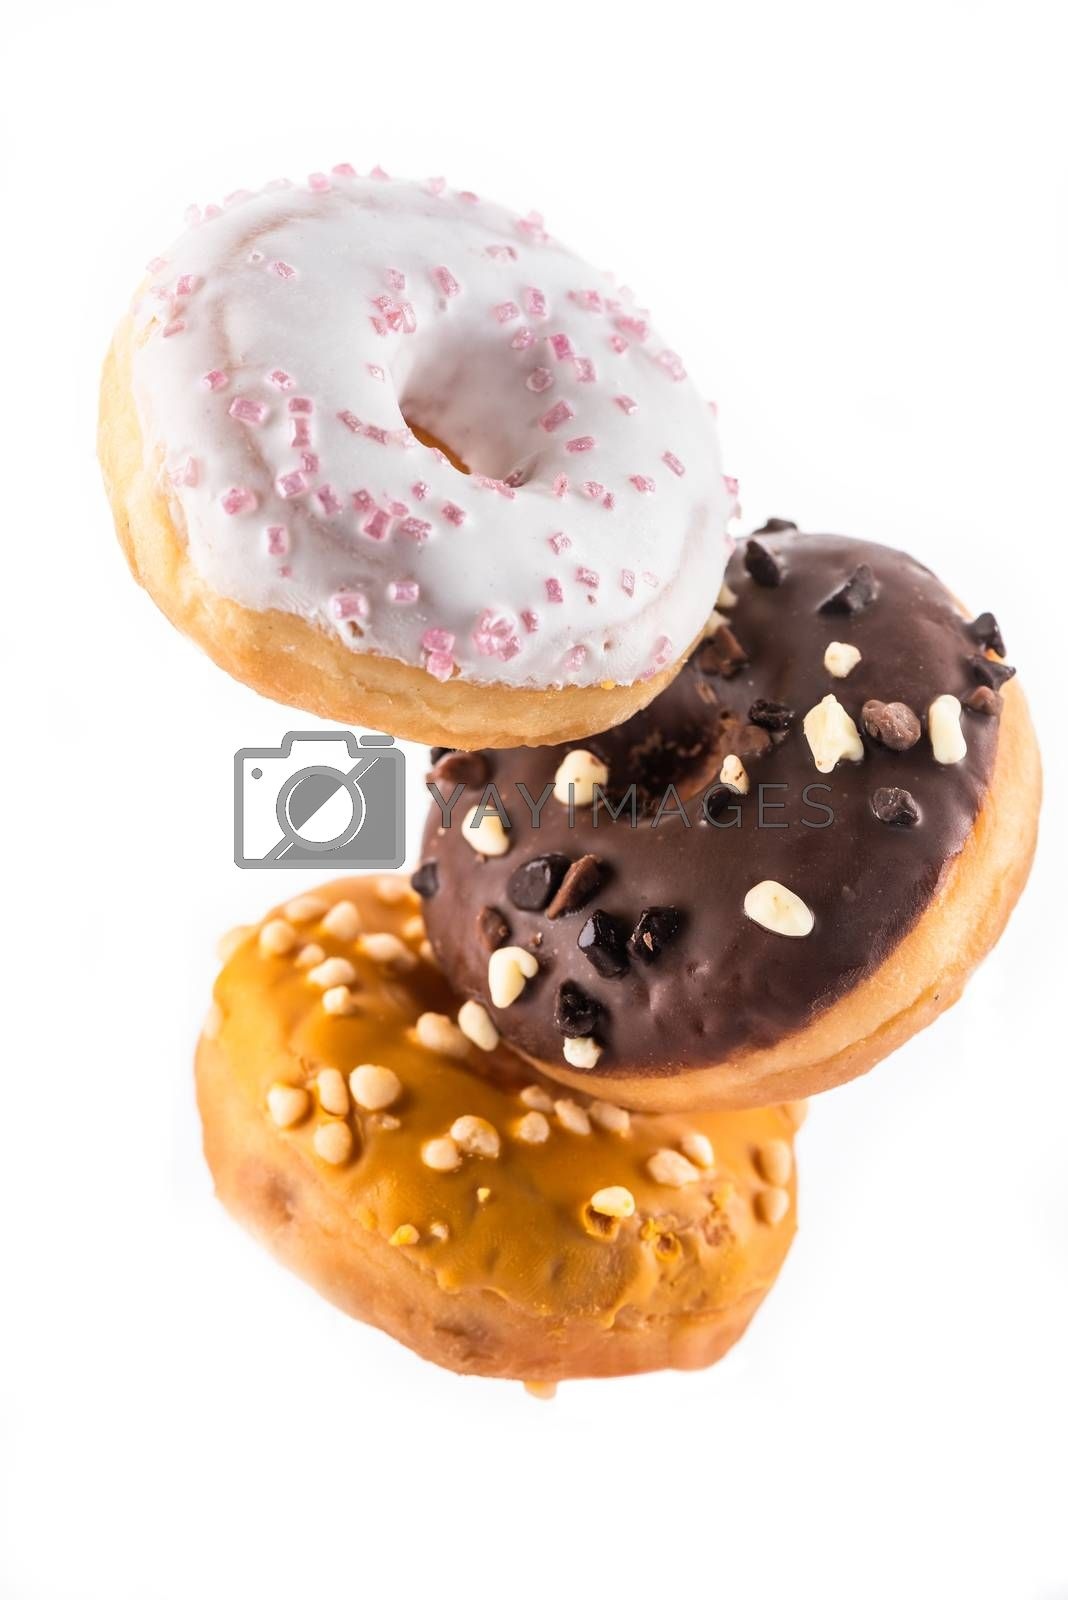 Flying Donut or Doughnut Creative Image. Falling Food On White Background. Food in Motion.